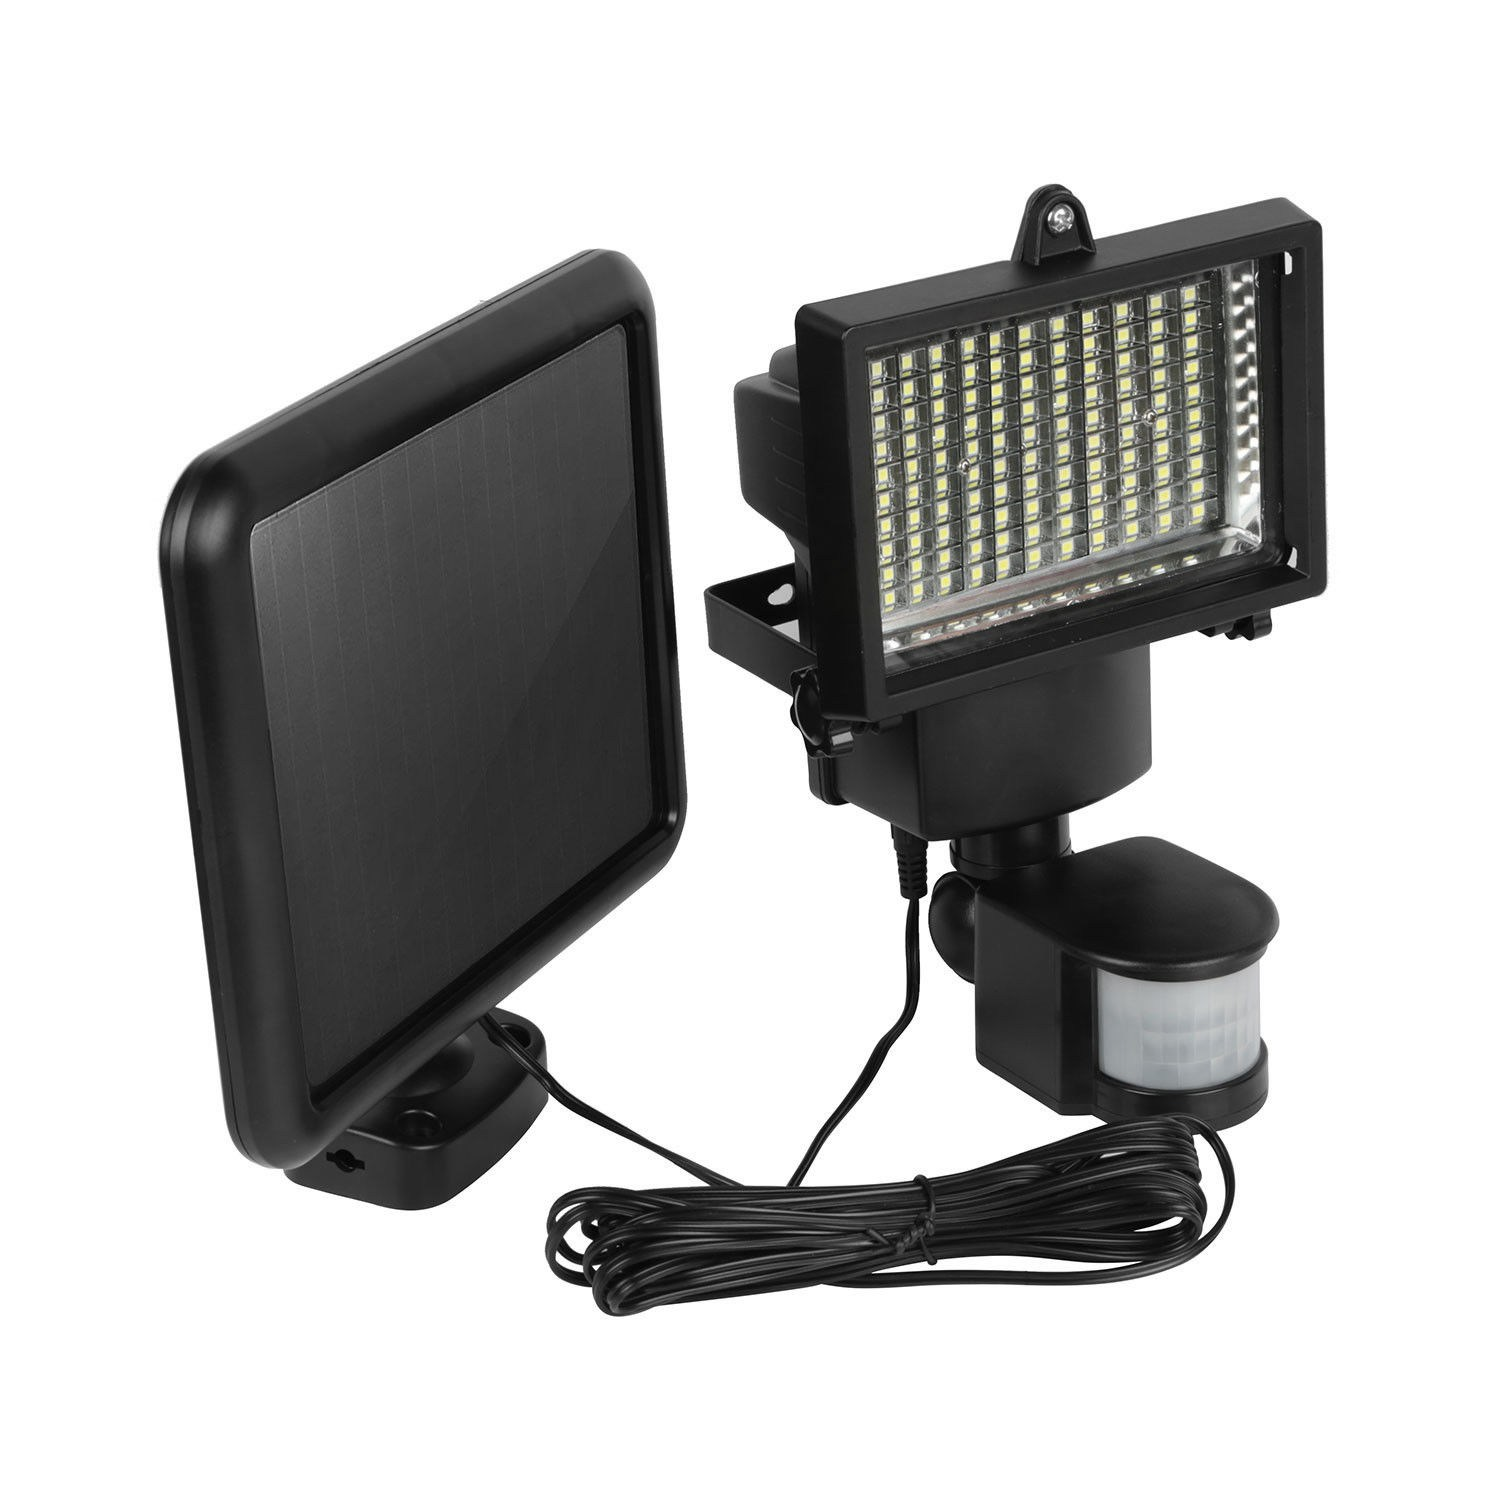 Safurance 100 LED Solar Panel Sensor Light Outdoor Security Floodlights Garden Motion HOT Building Automation<br>